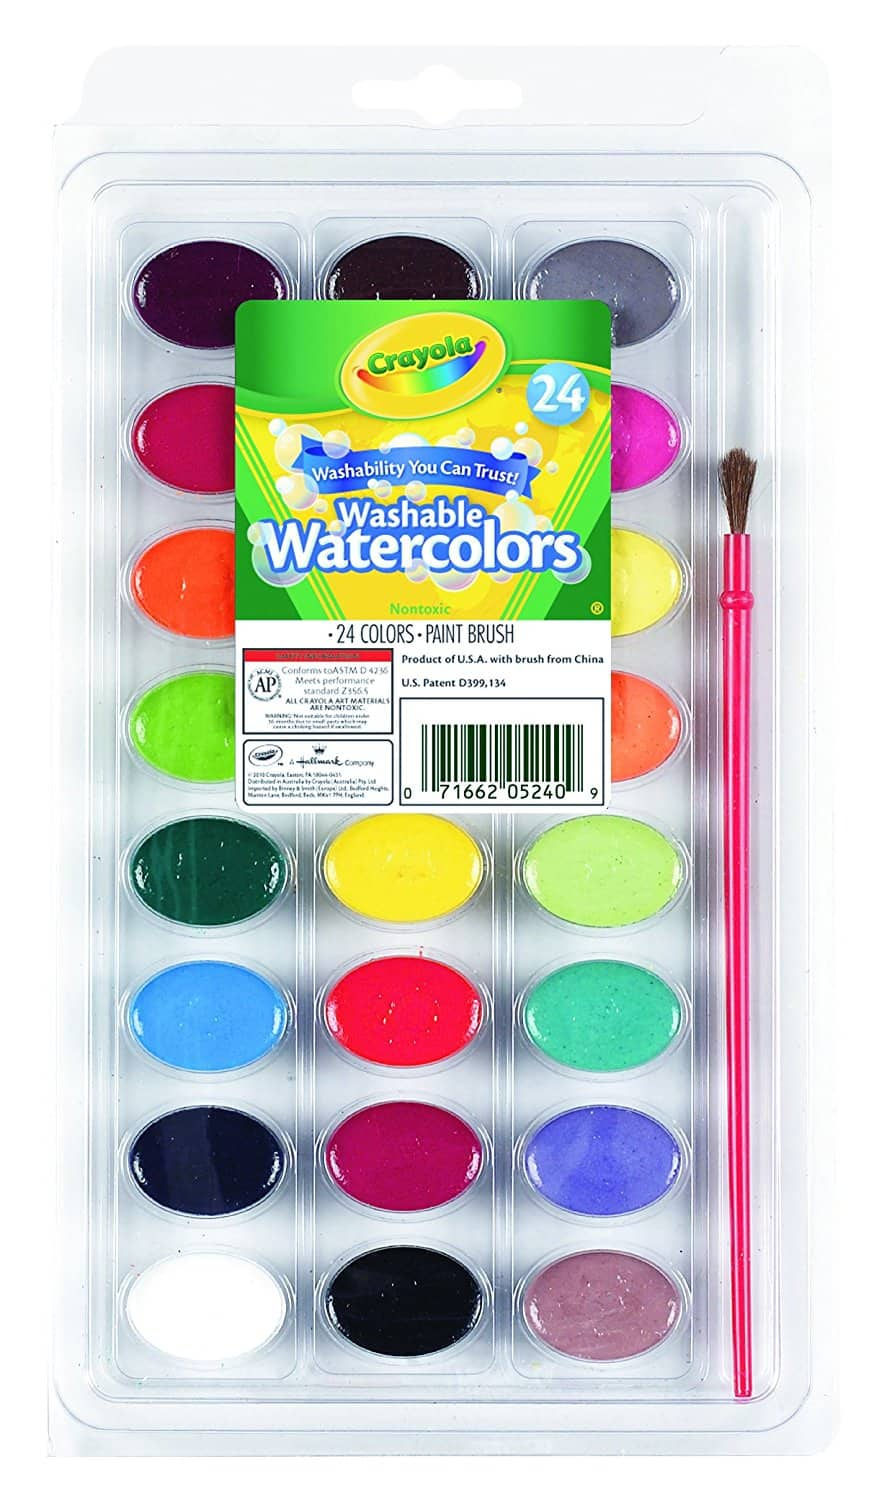 Crayola 24 Ct Washable Watercolors $1.98 @ Amazon w/ Free Prime shipping